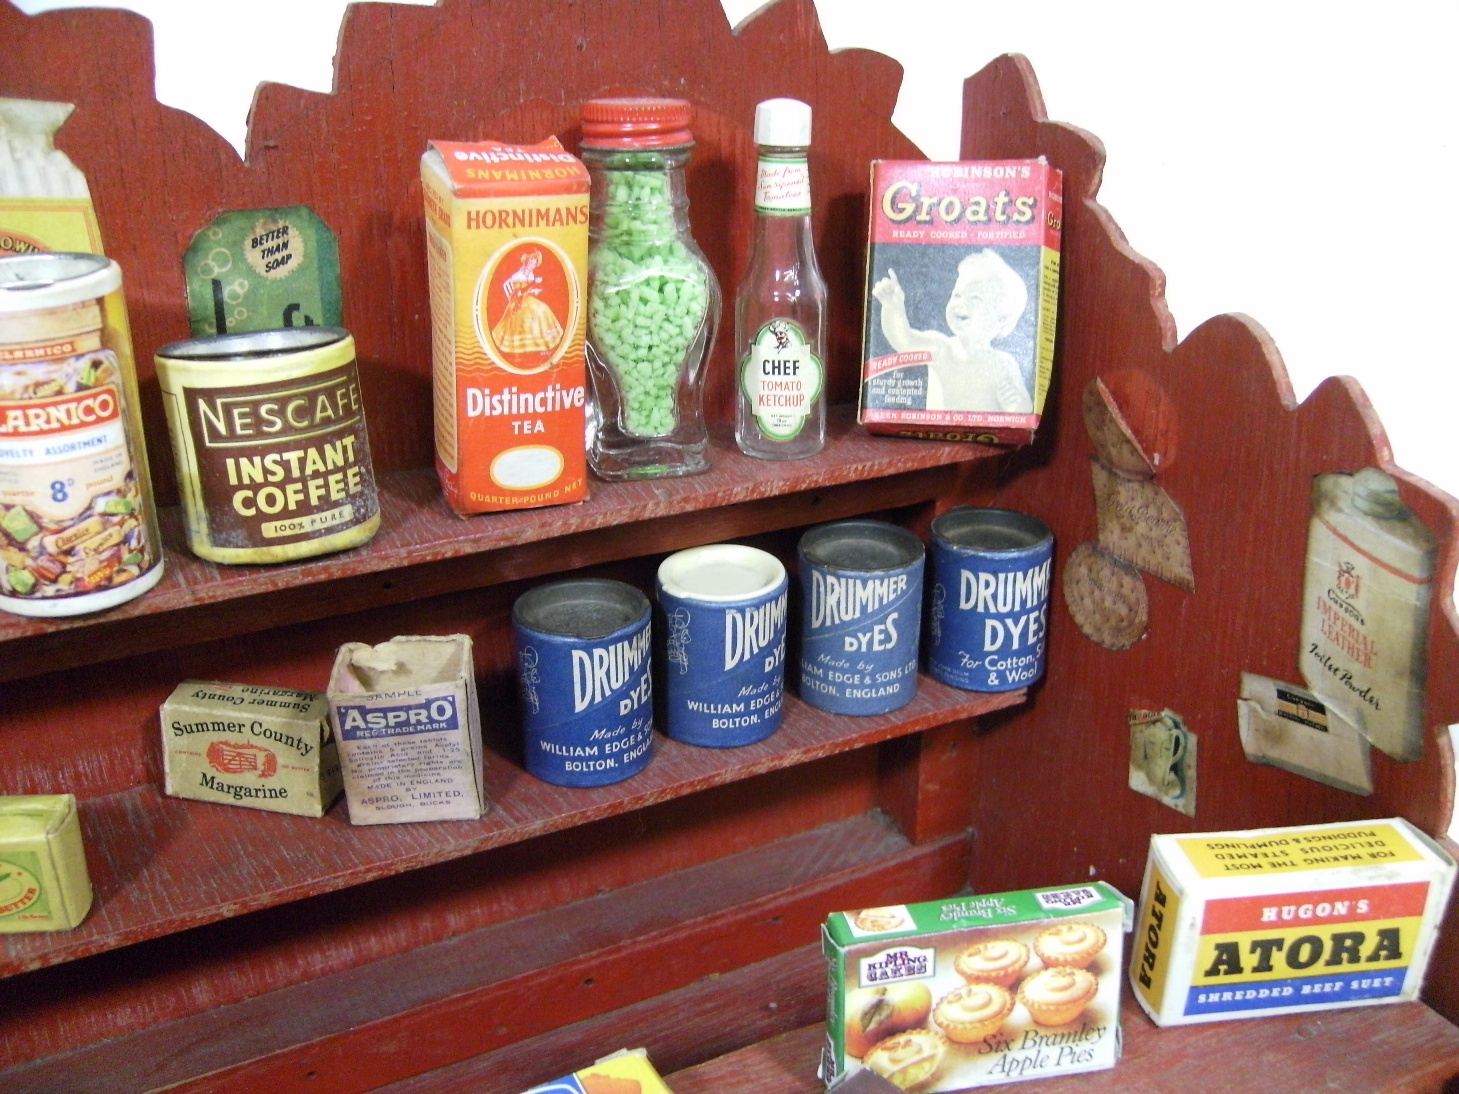 Delightful Scratch Built Wooden Toy Sweet Shop Counter Packets